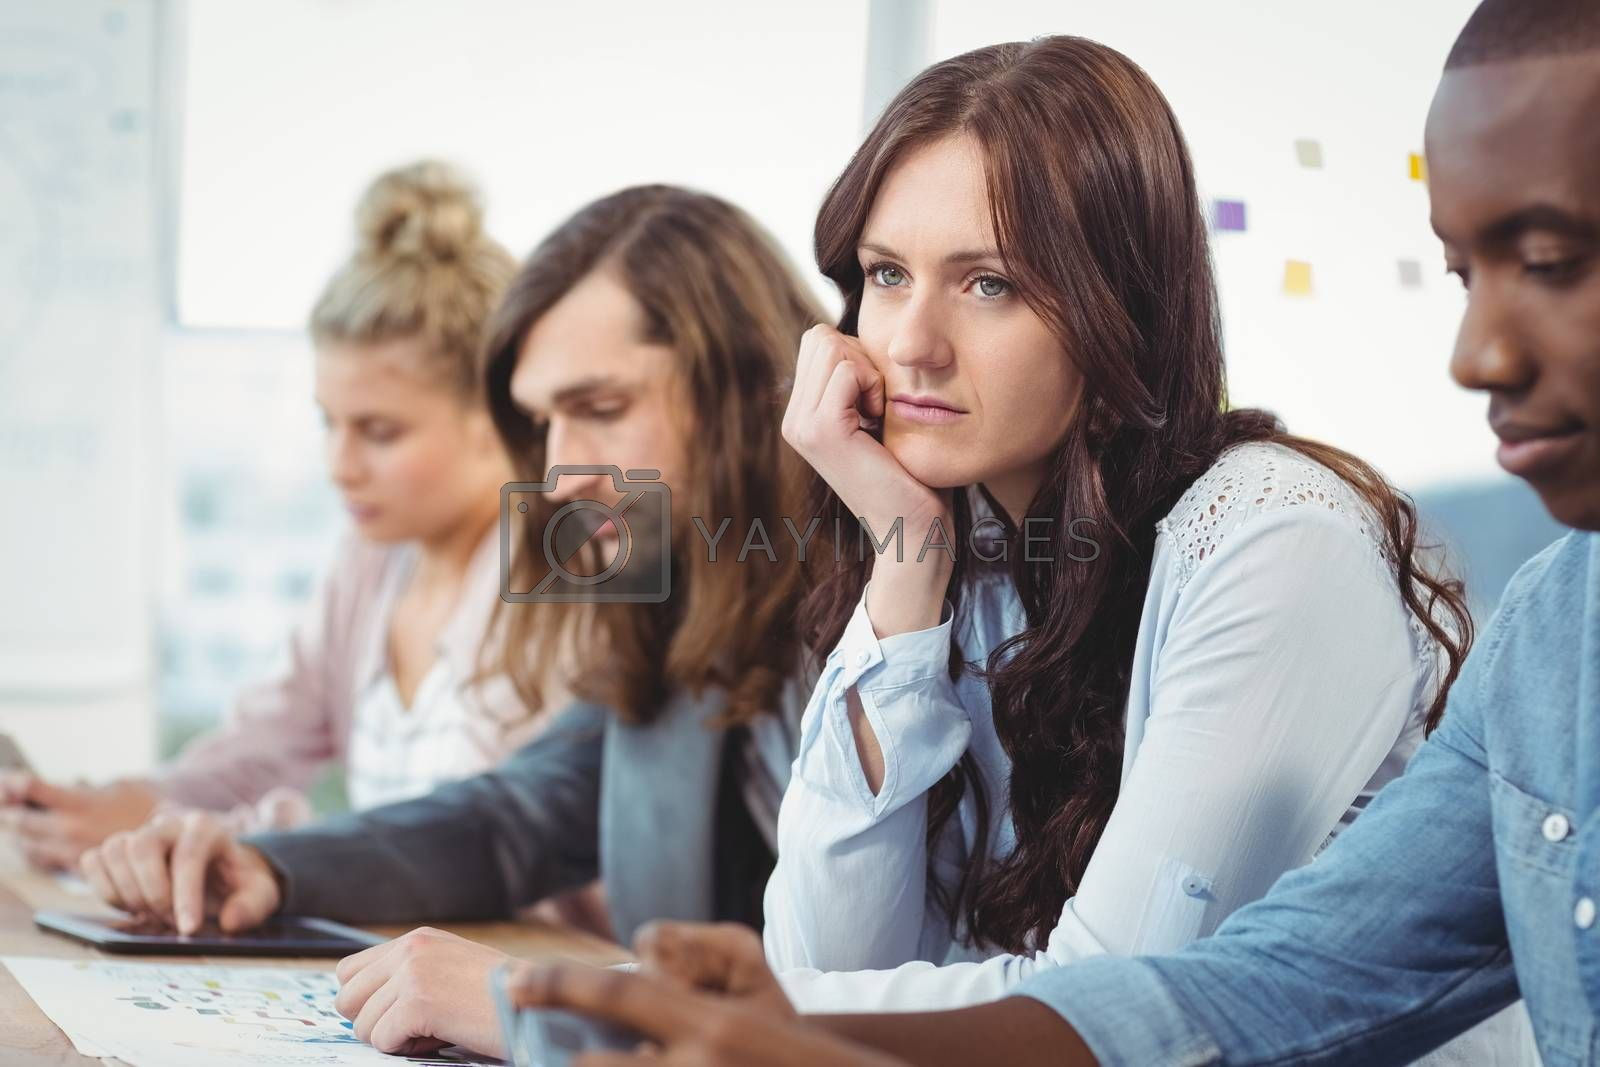 Thoughtful woman sitting at desk with coworkers in office